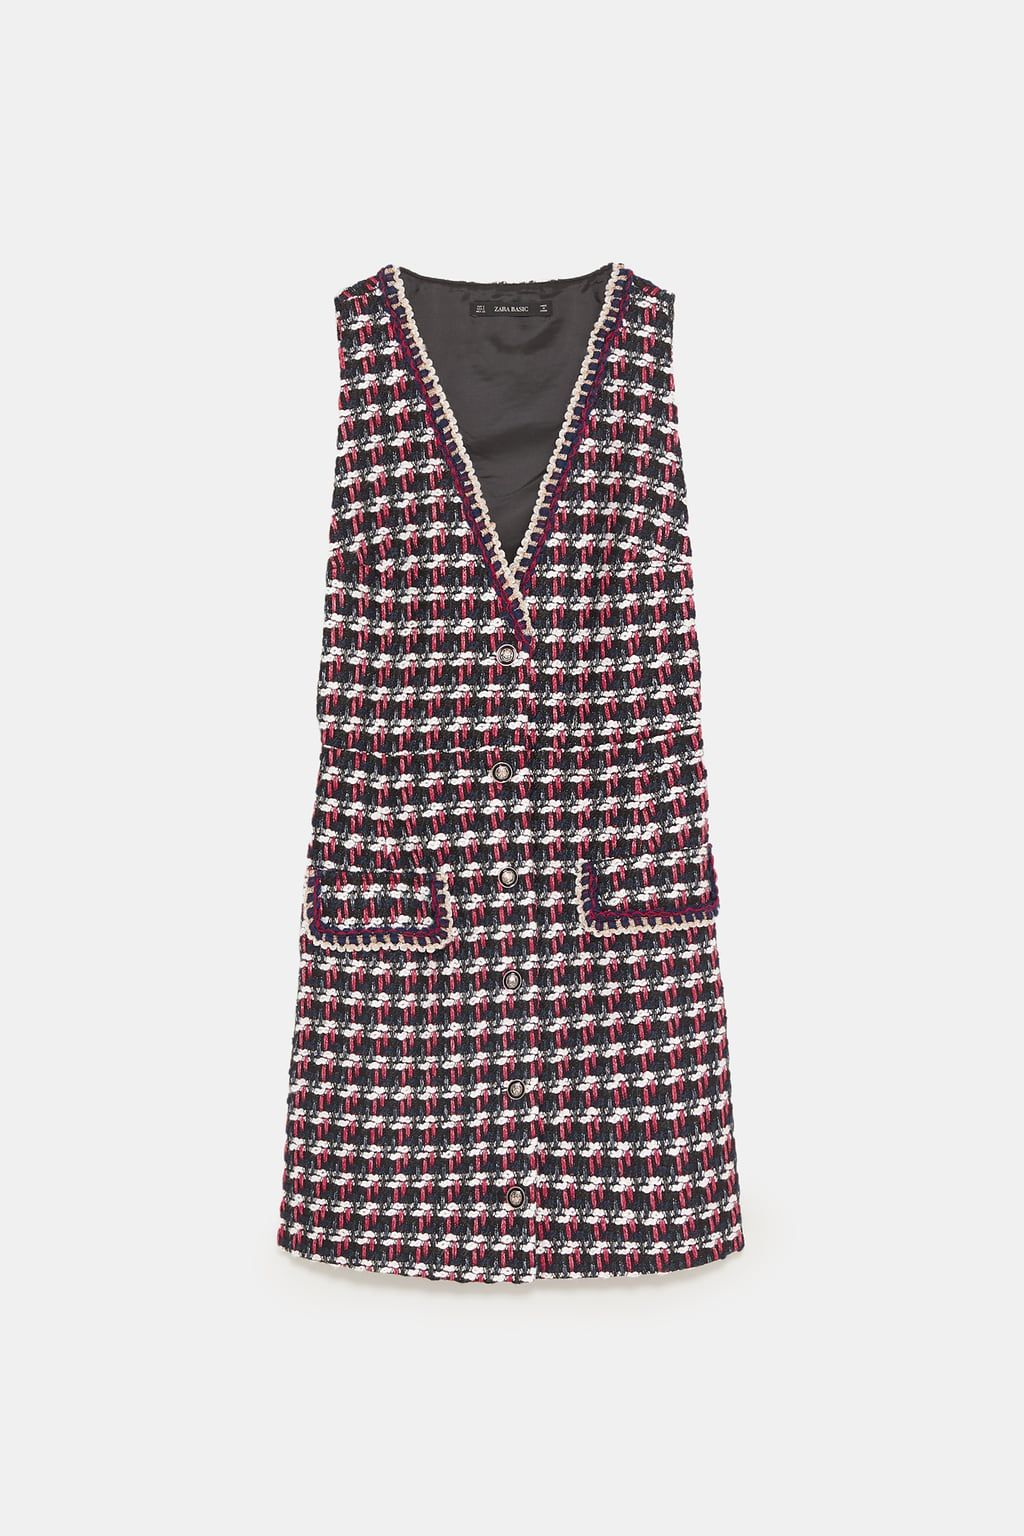 68b4c275 Image 8 of TEXTURED DRESS WITH TRIMS from Zara | Wardrobe - Brands ...